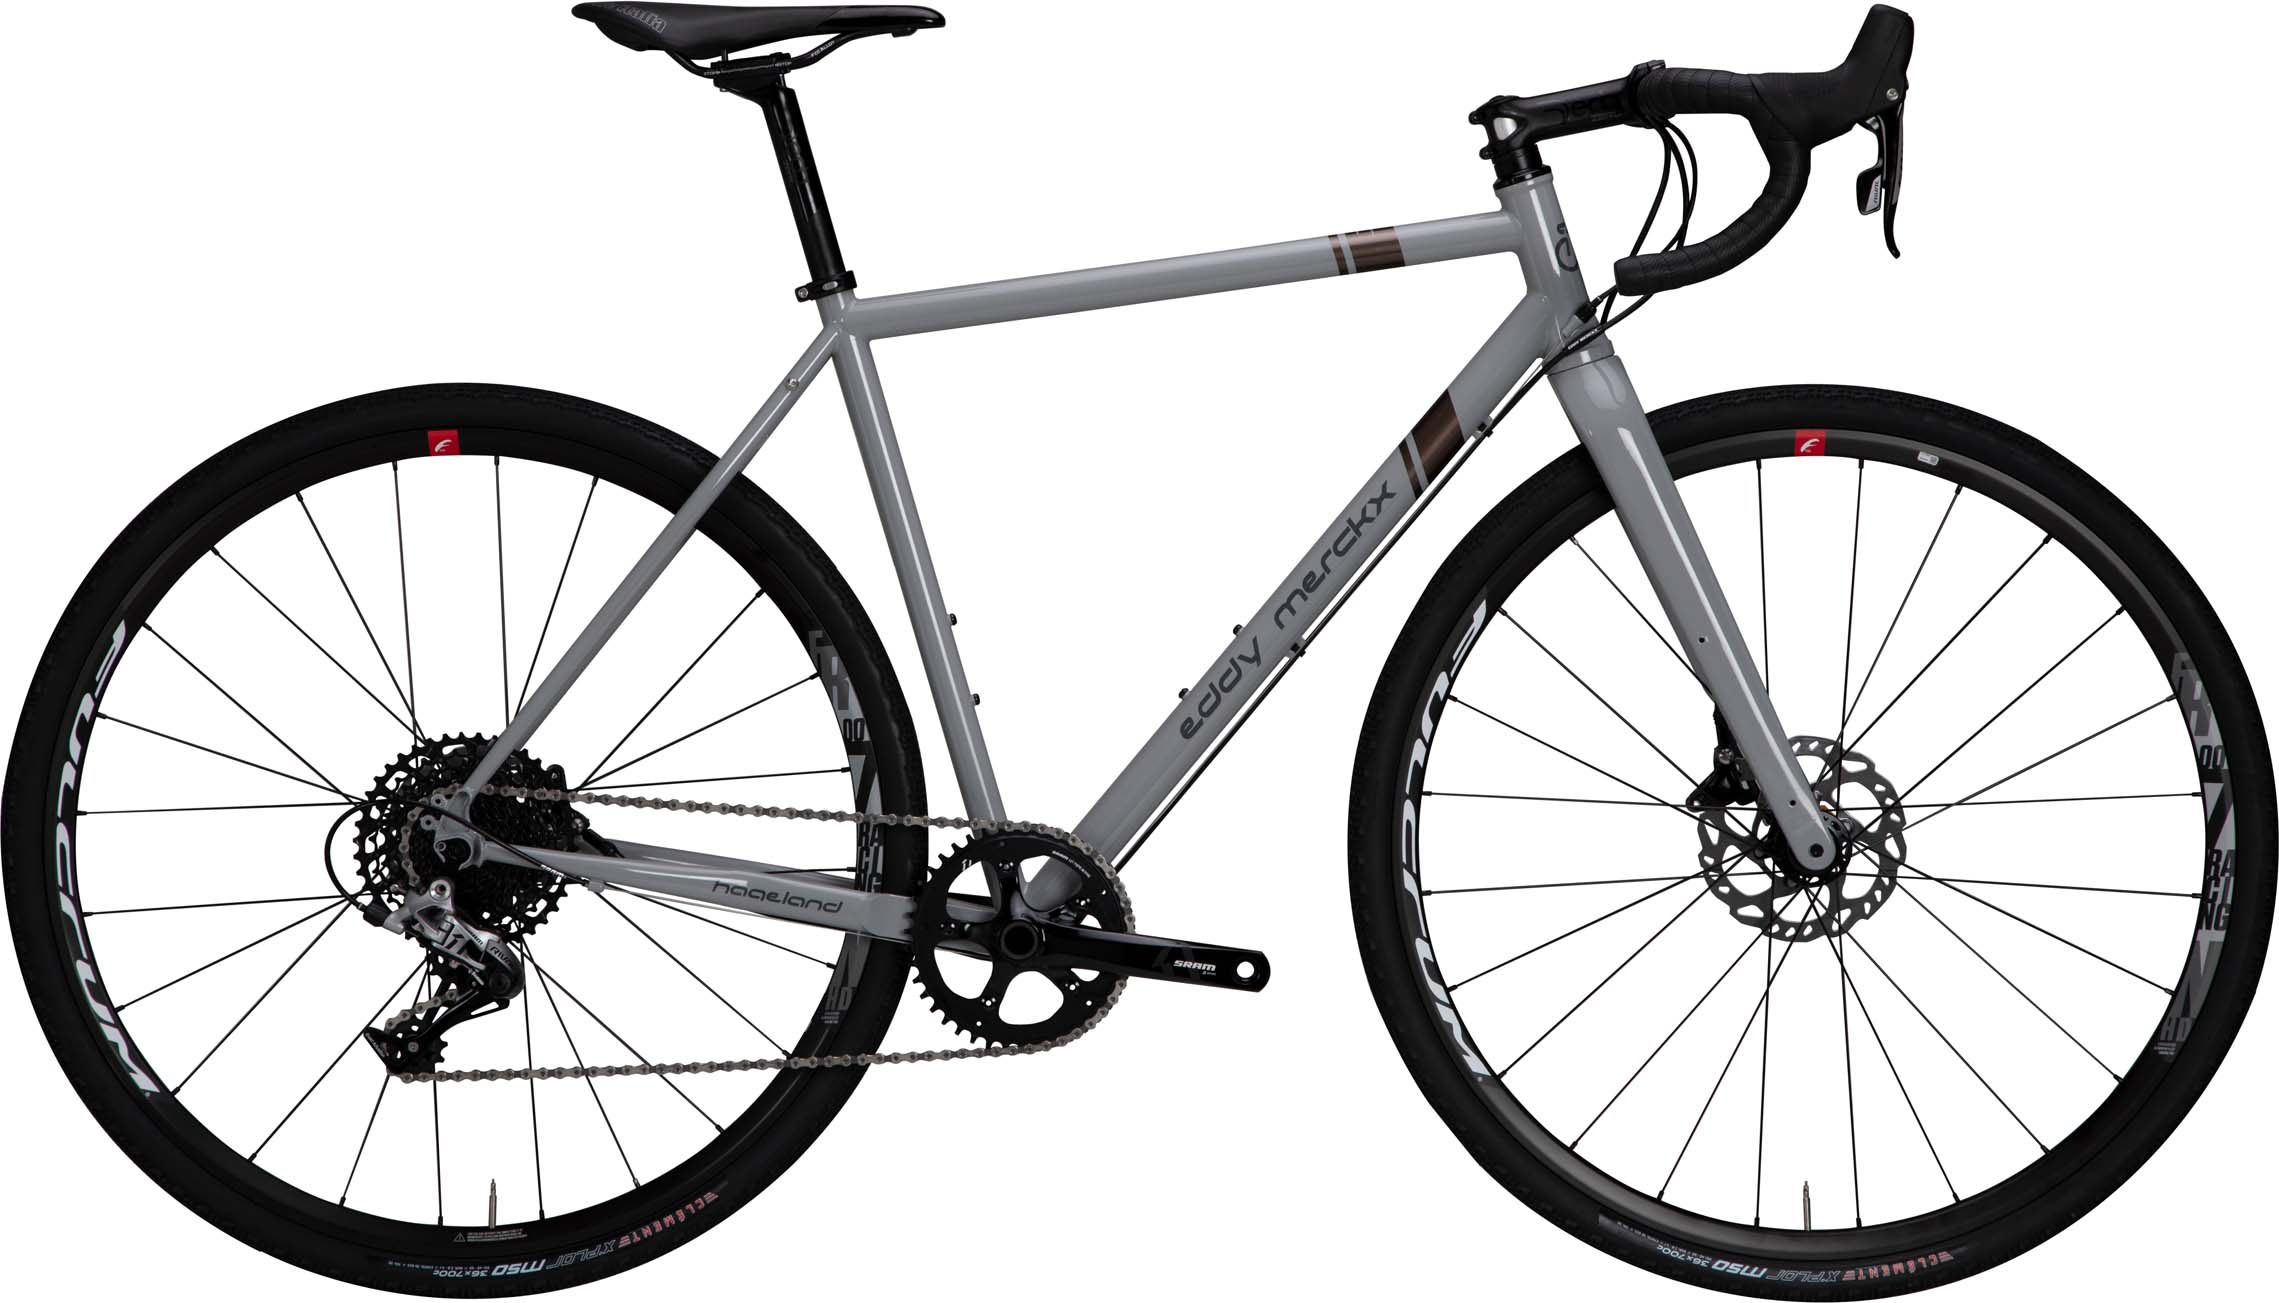 Wiggle Eddy Merckx Hageland Rival1 Road Bike 2020 Adventure Bikes